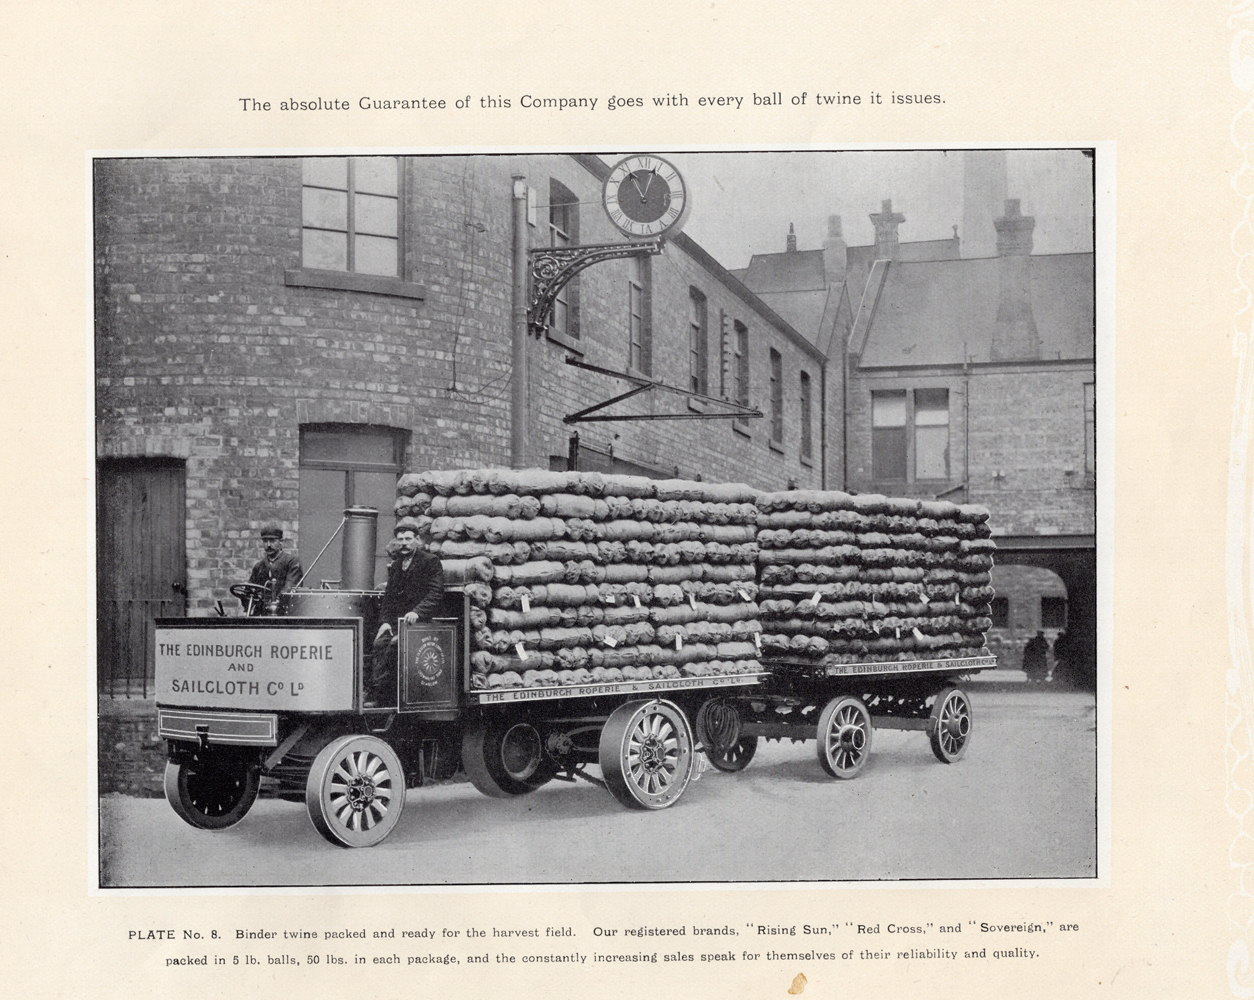 Leith Roperie - Binder Twine Packed And Ready For The Harvest Field c.1906